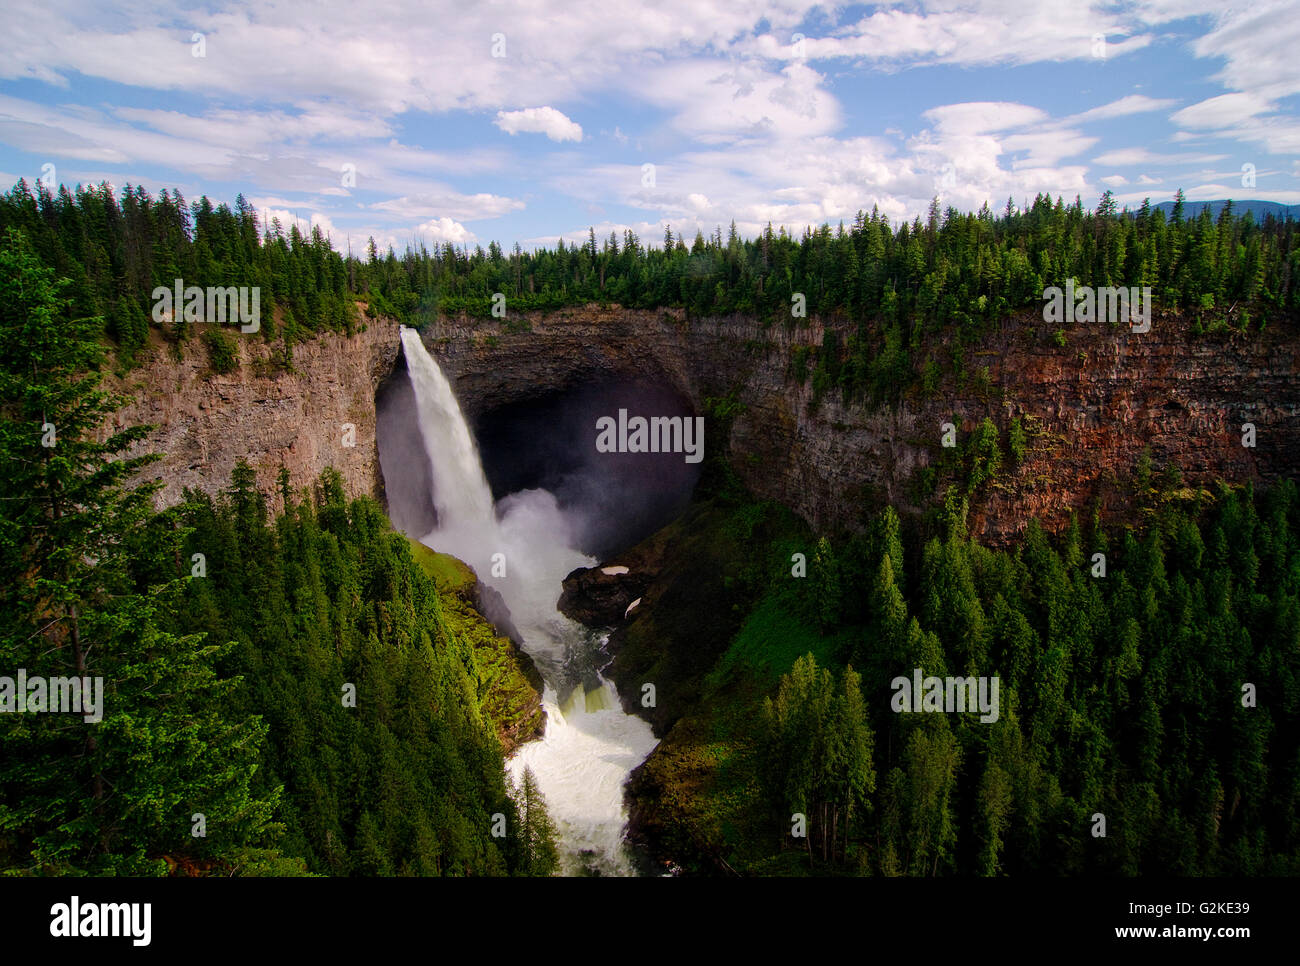 Classic view of Helcken Falls in Wells Gray Provincial Park, in the Thompson Okanagan region of British Columbia, - Stock Image